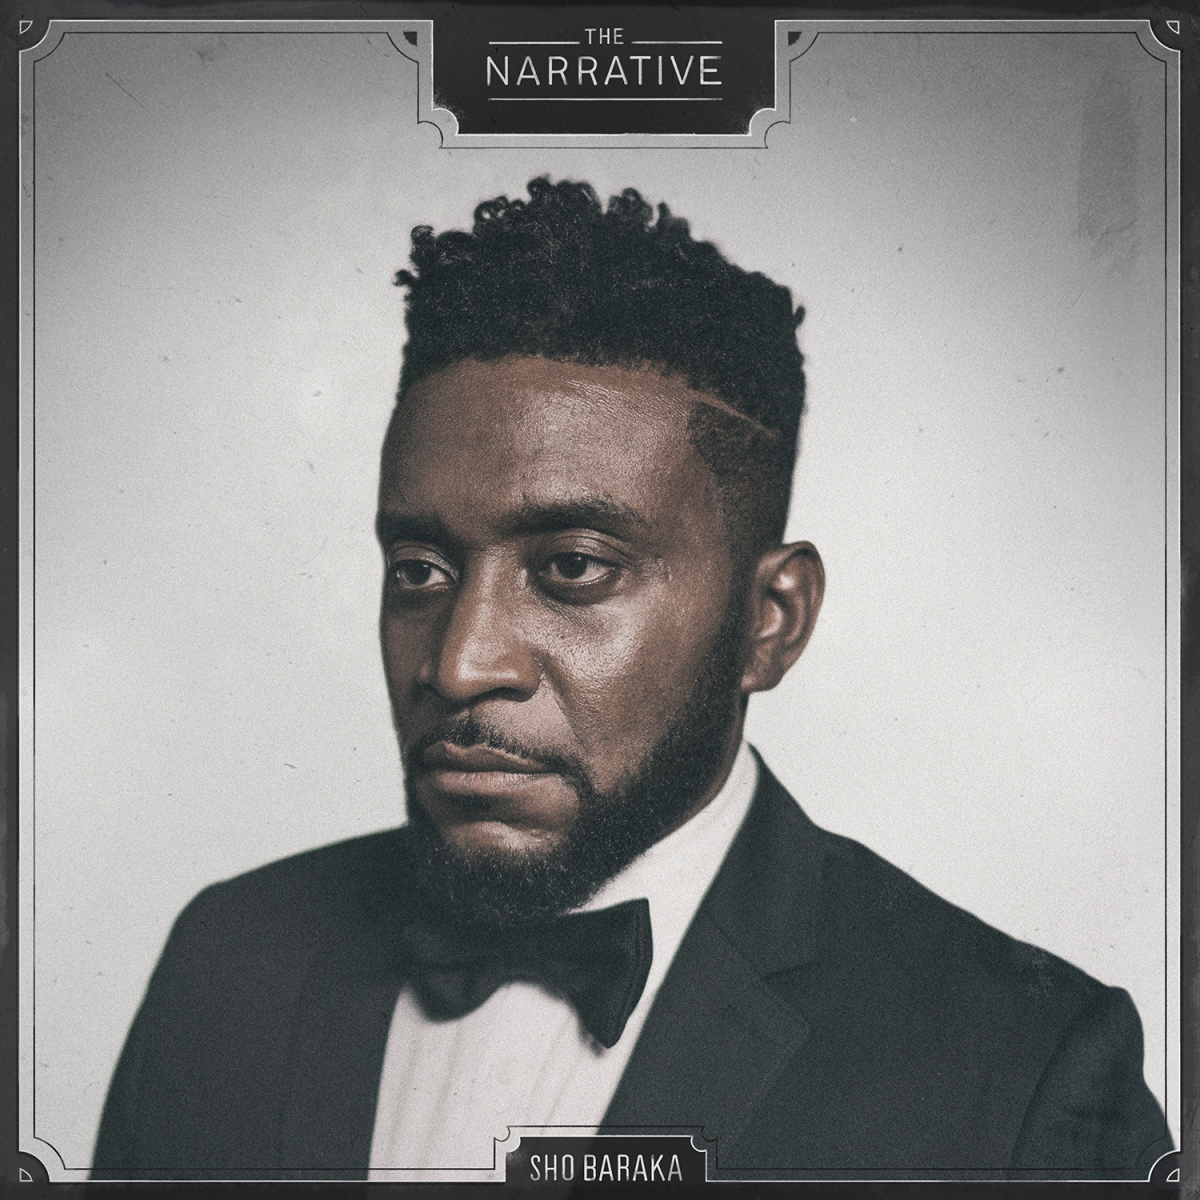 The Narrative, Sho Baraka, Lifeway